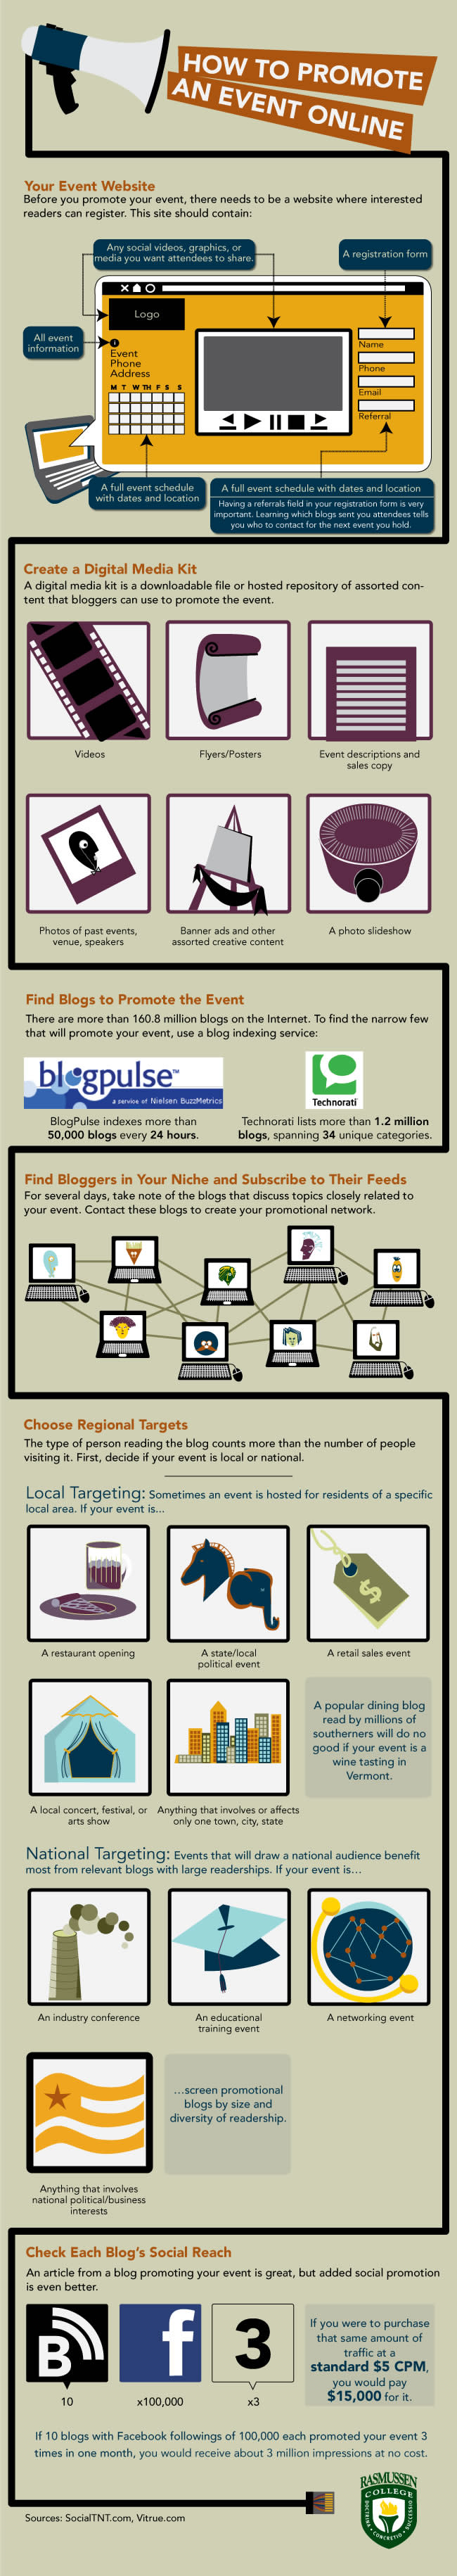 Event Promotion Infographic from Rasmussen College